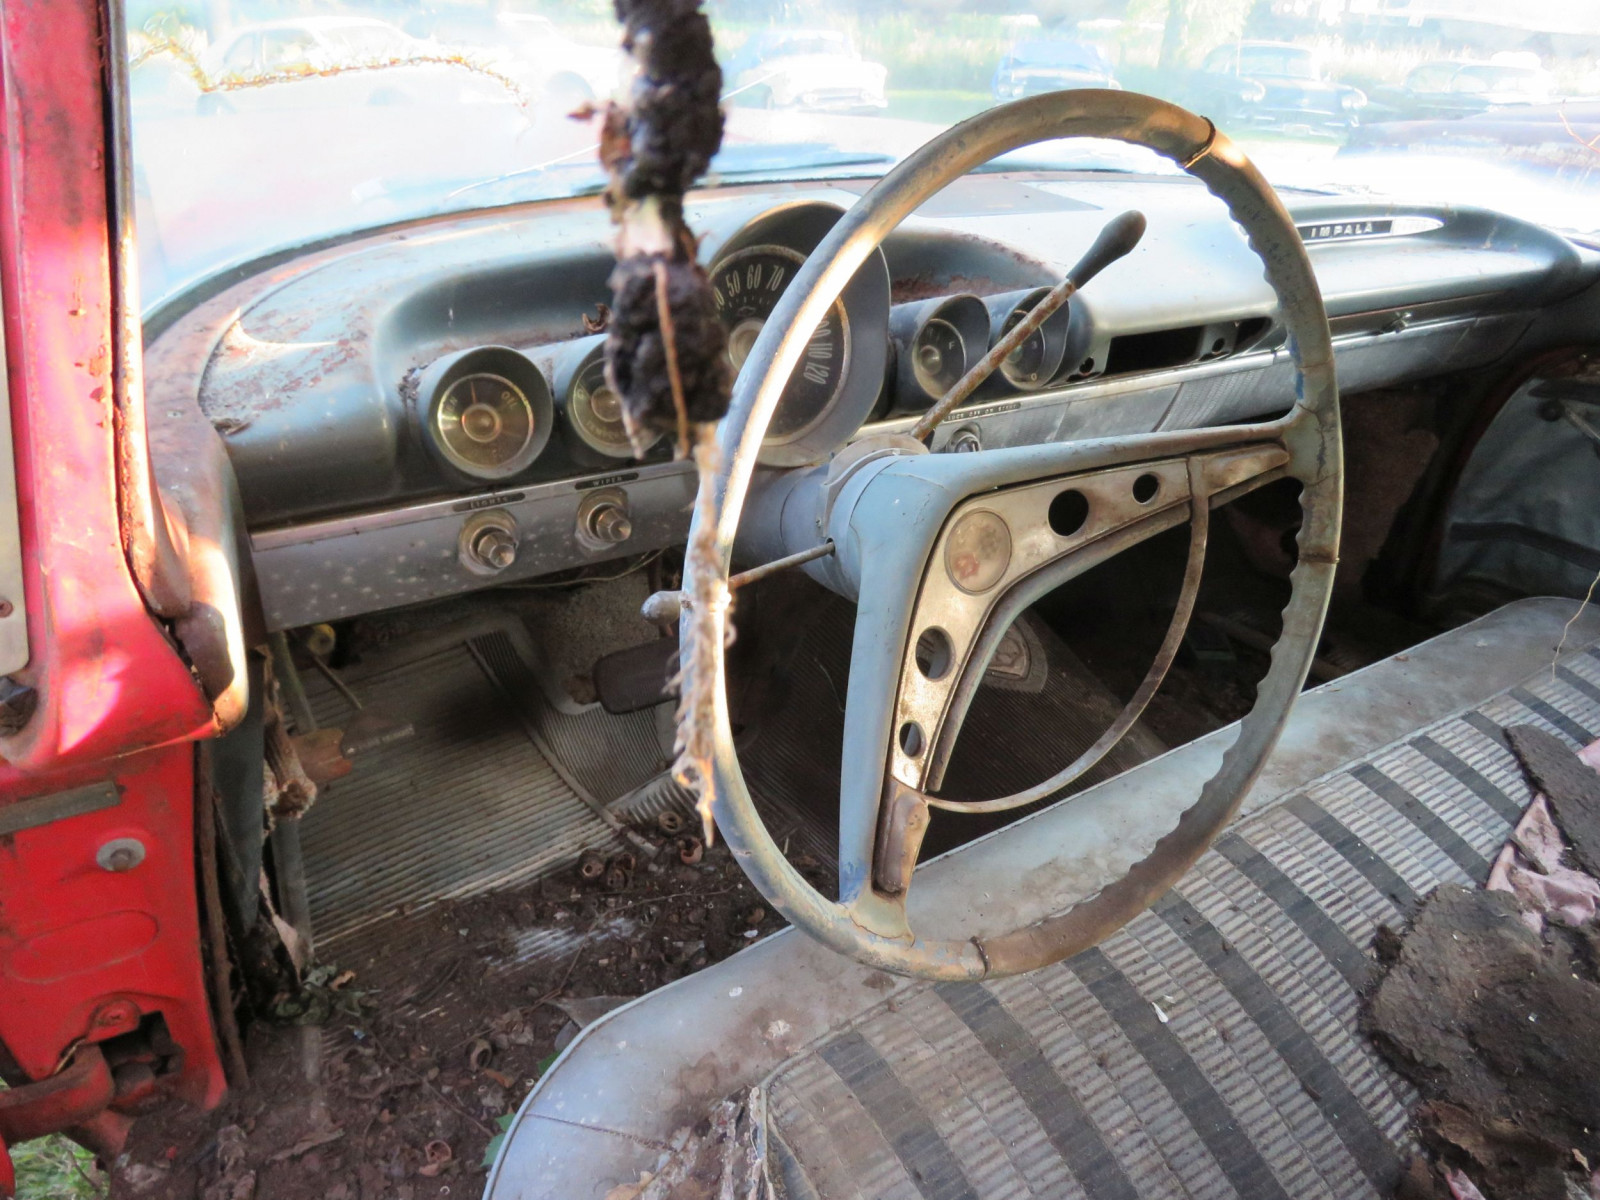 1959 Chevrolet 4dr Sedan for parts or project - Image 10